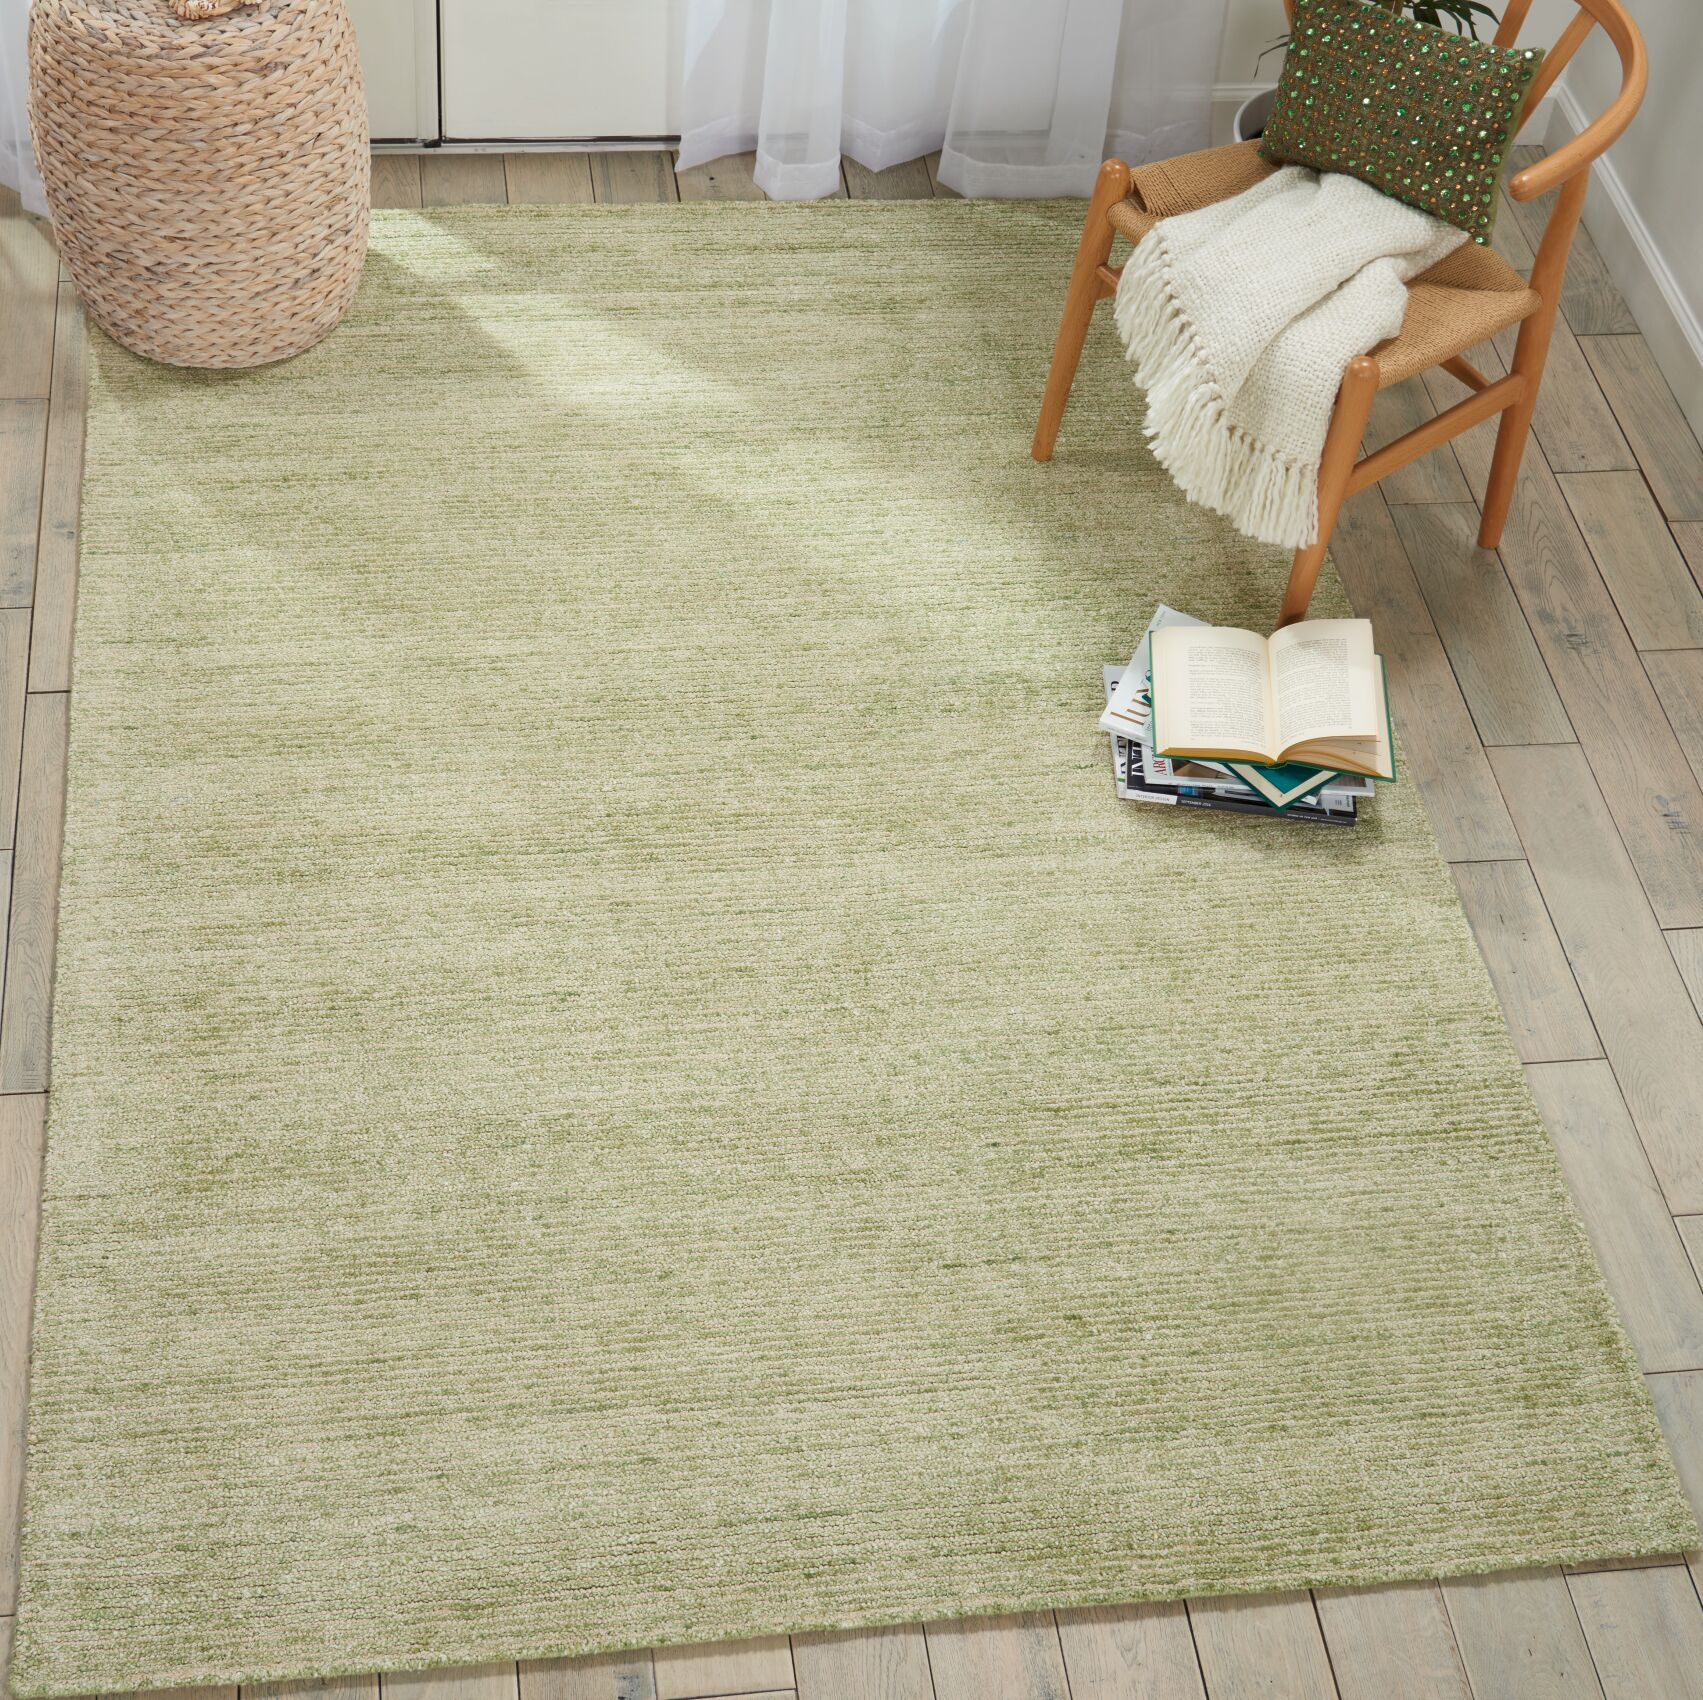 Romans Solid Hand-Tufted Citron Green Area Rug Rug Size: Rectangle 5'3